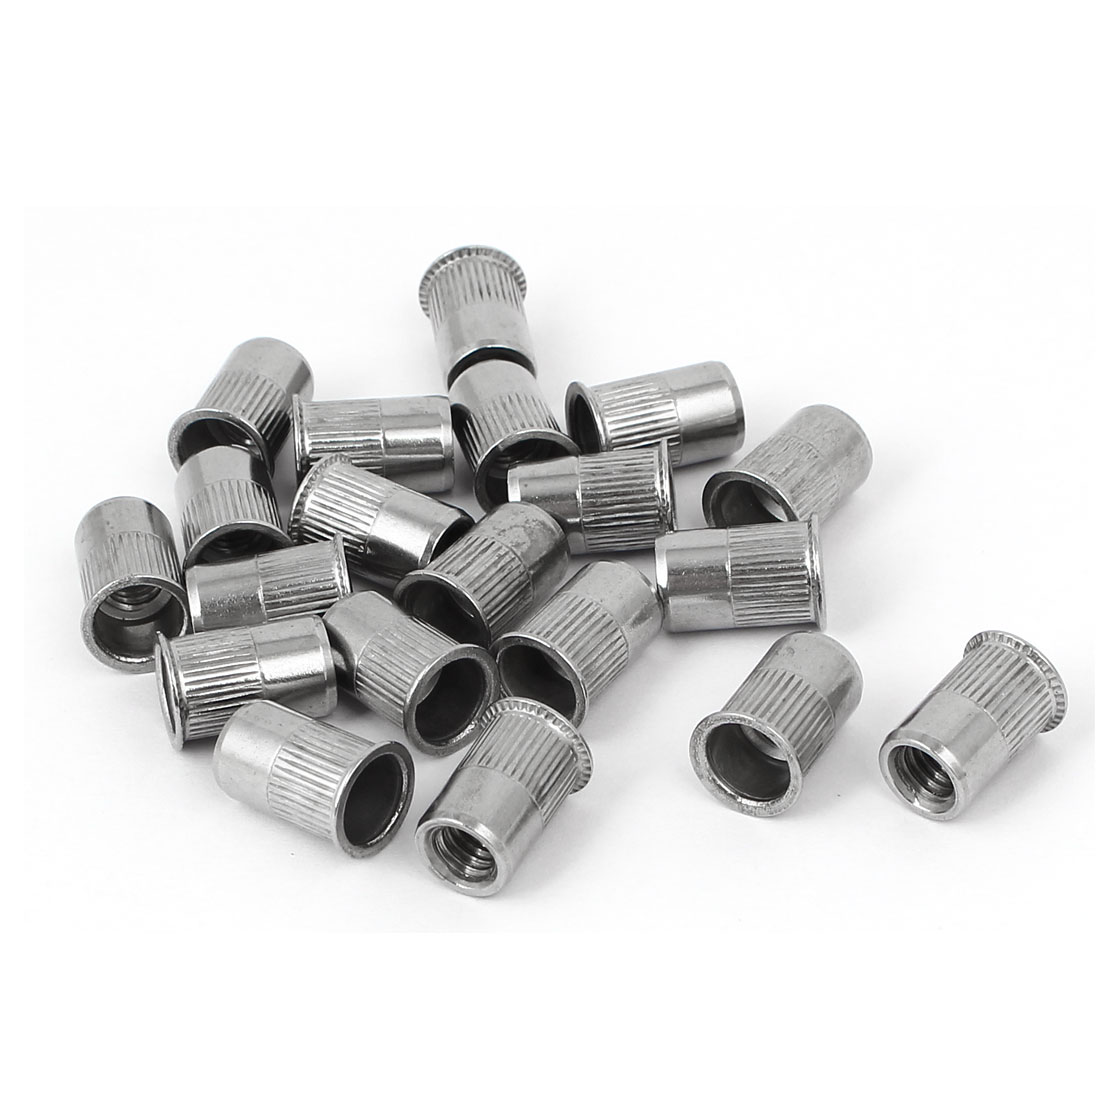 M6 x 14mm Stripe Countersunk Head Blind Rivet Nut Insert Nutsert 20PCS